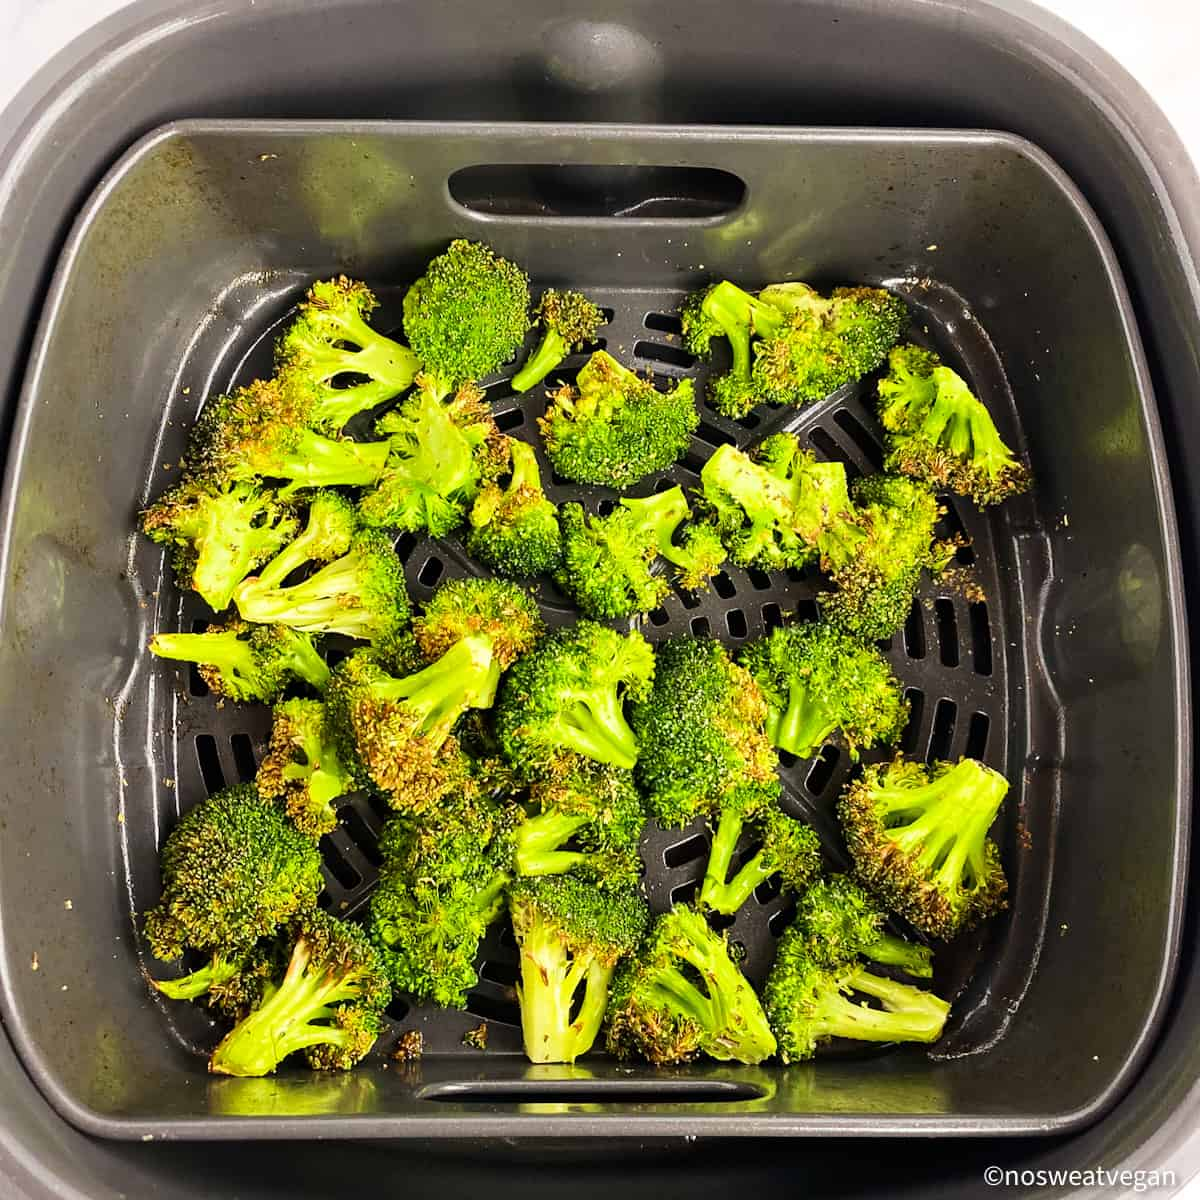 Fresh broccoli roasted in the air fryer basket.